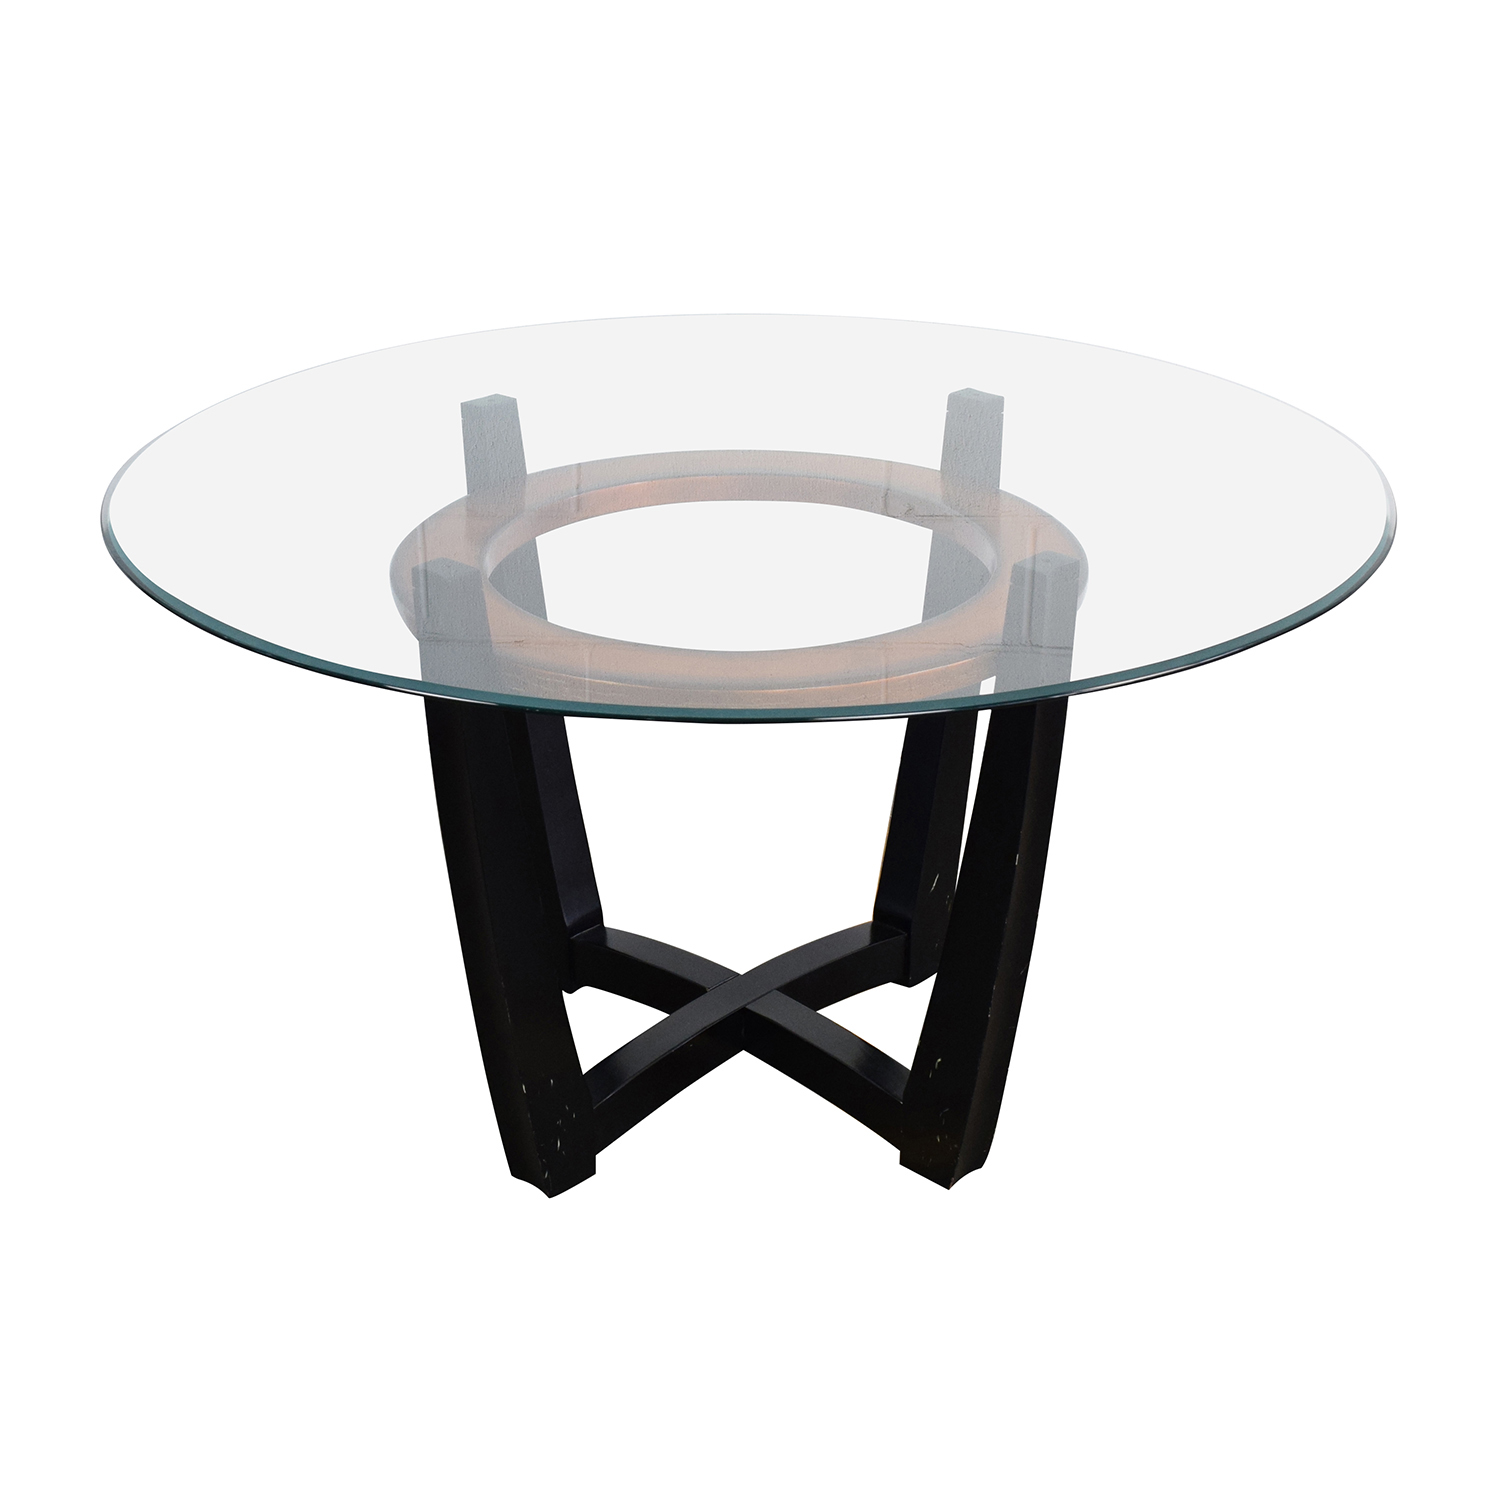 9 OFF   Macy's Macy's Elation Round Glass Dining Table / Tables